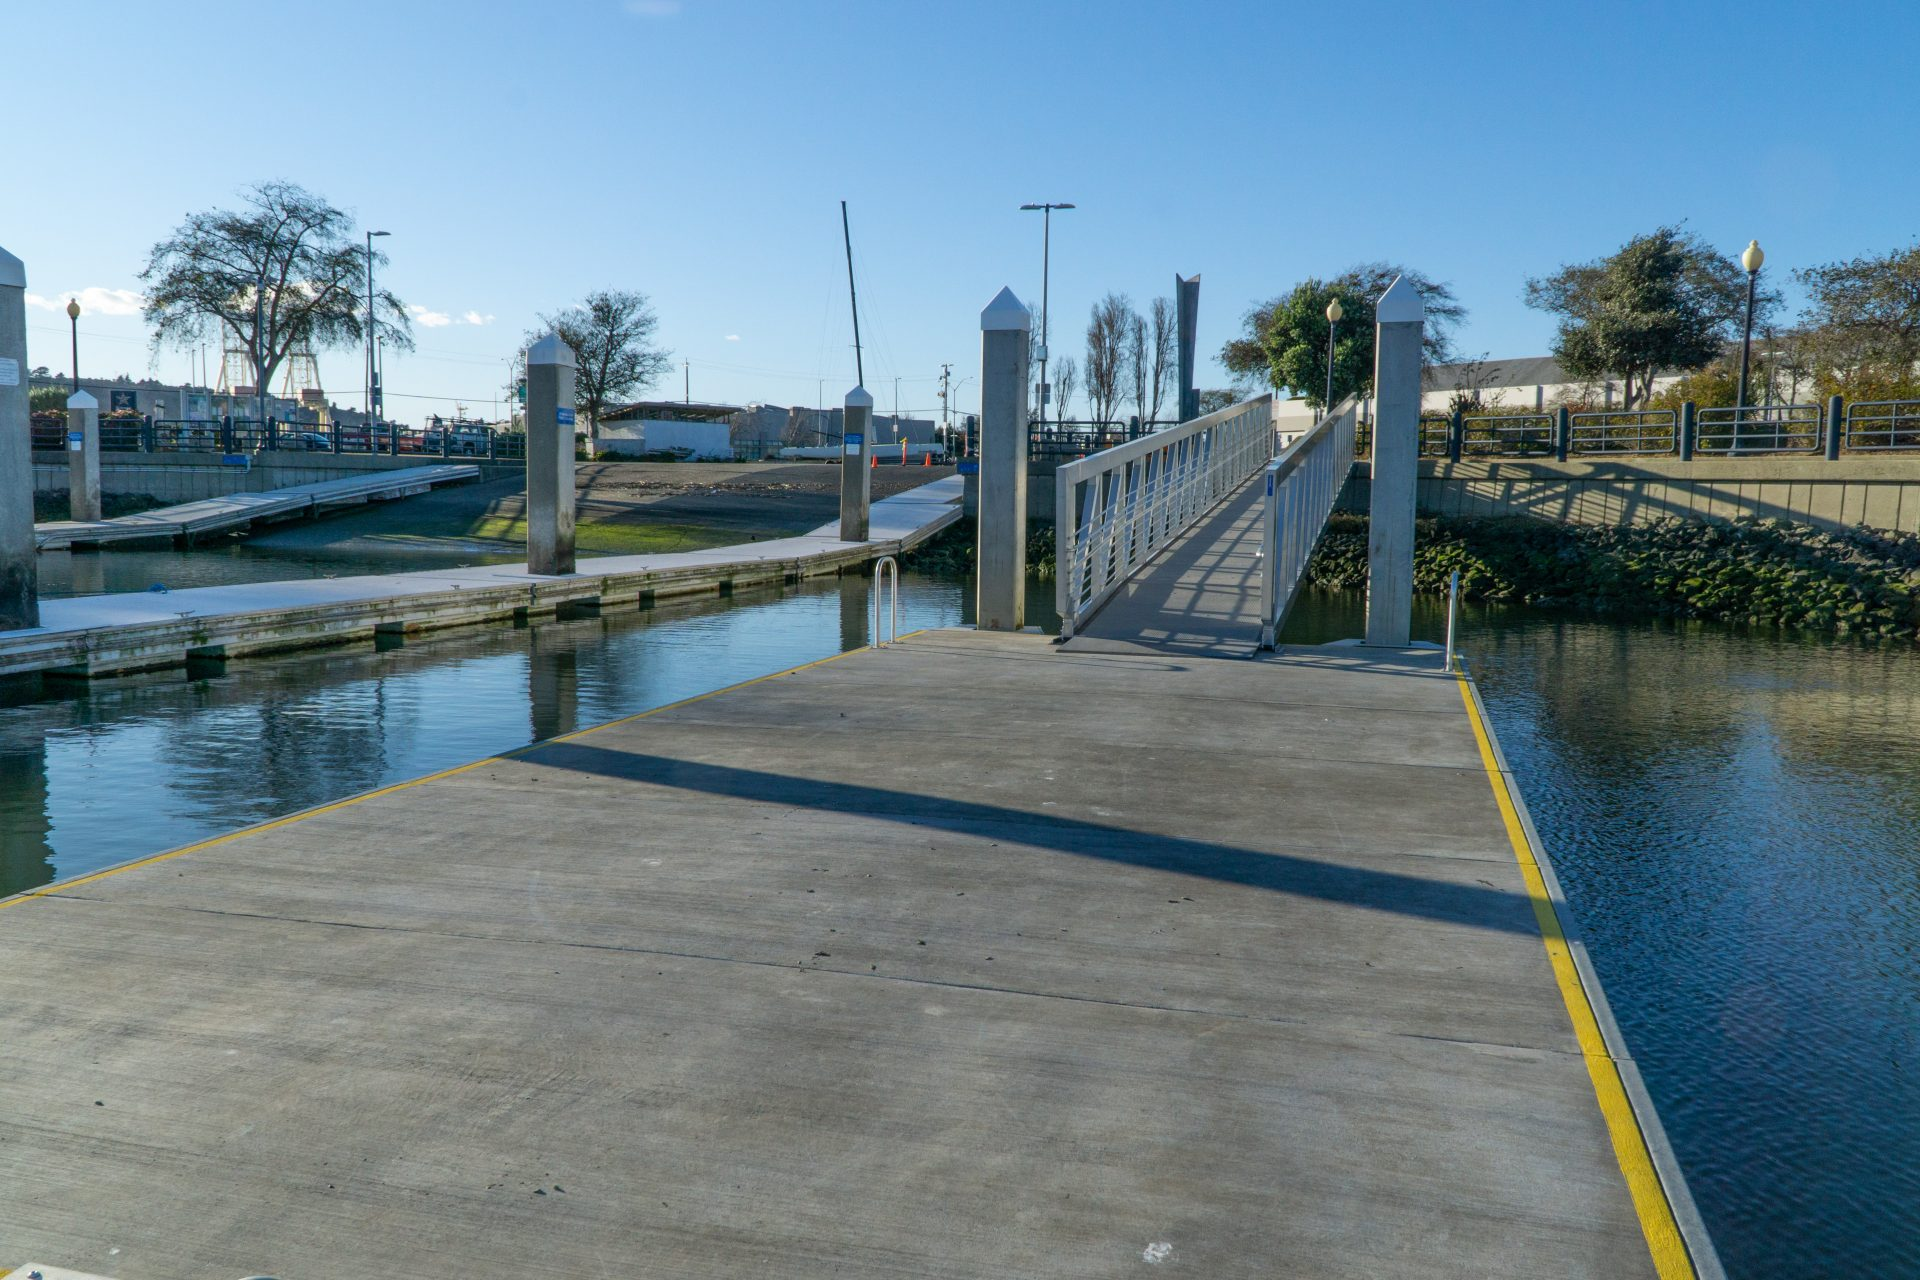 cement pier with ramp to shore